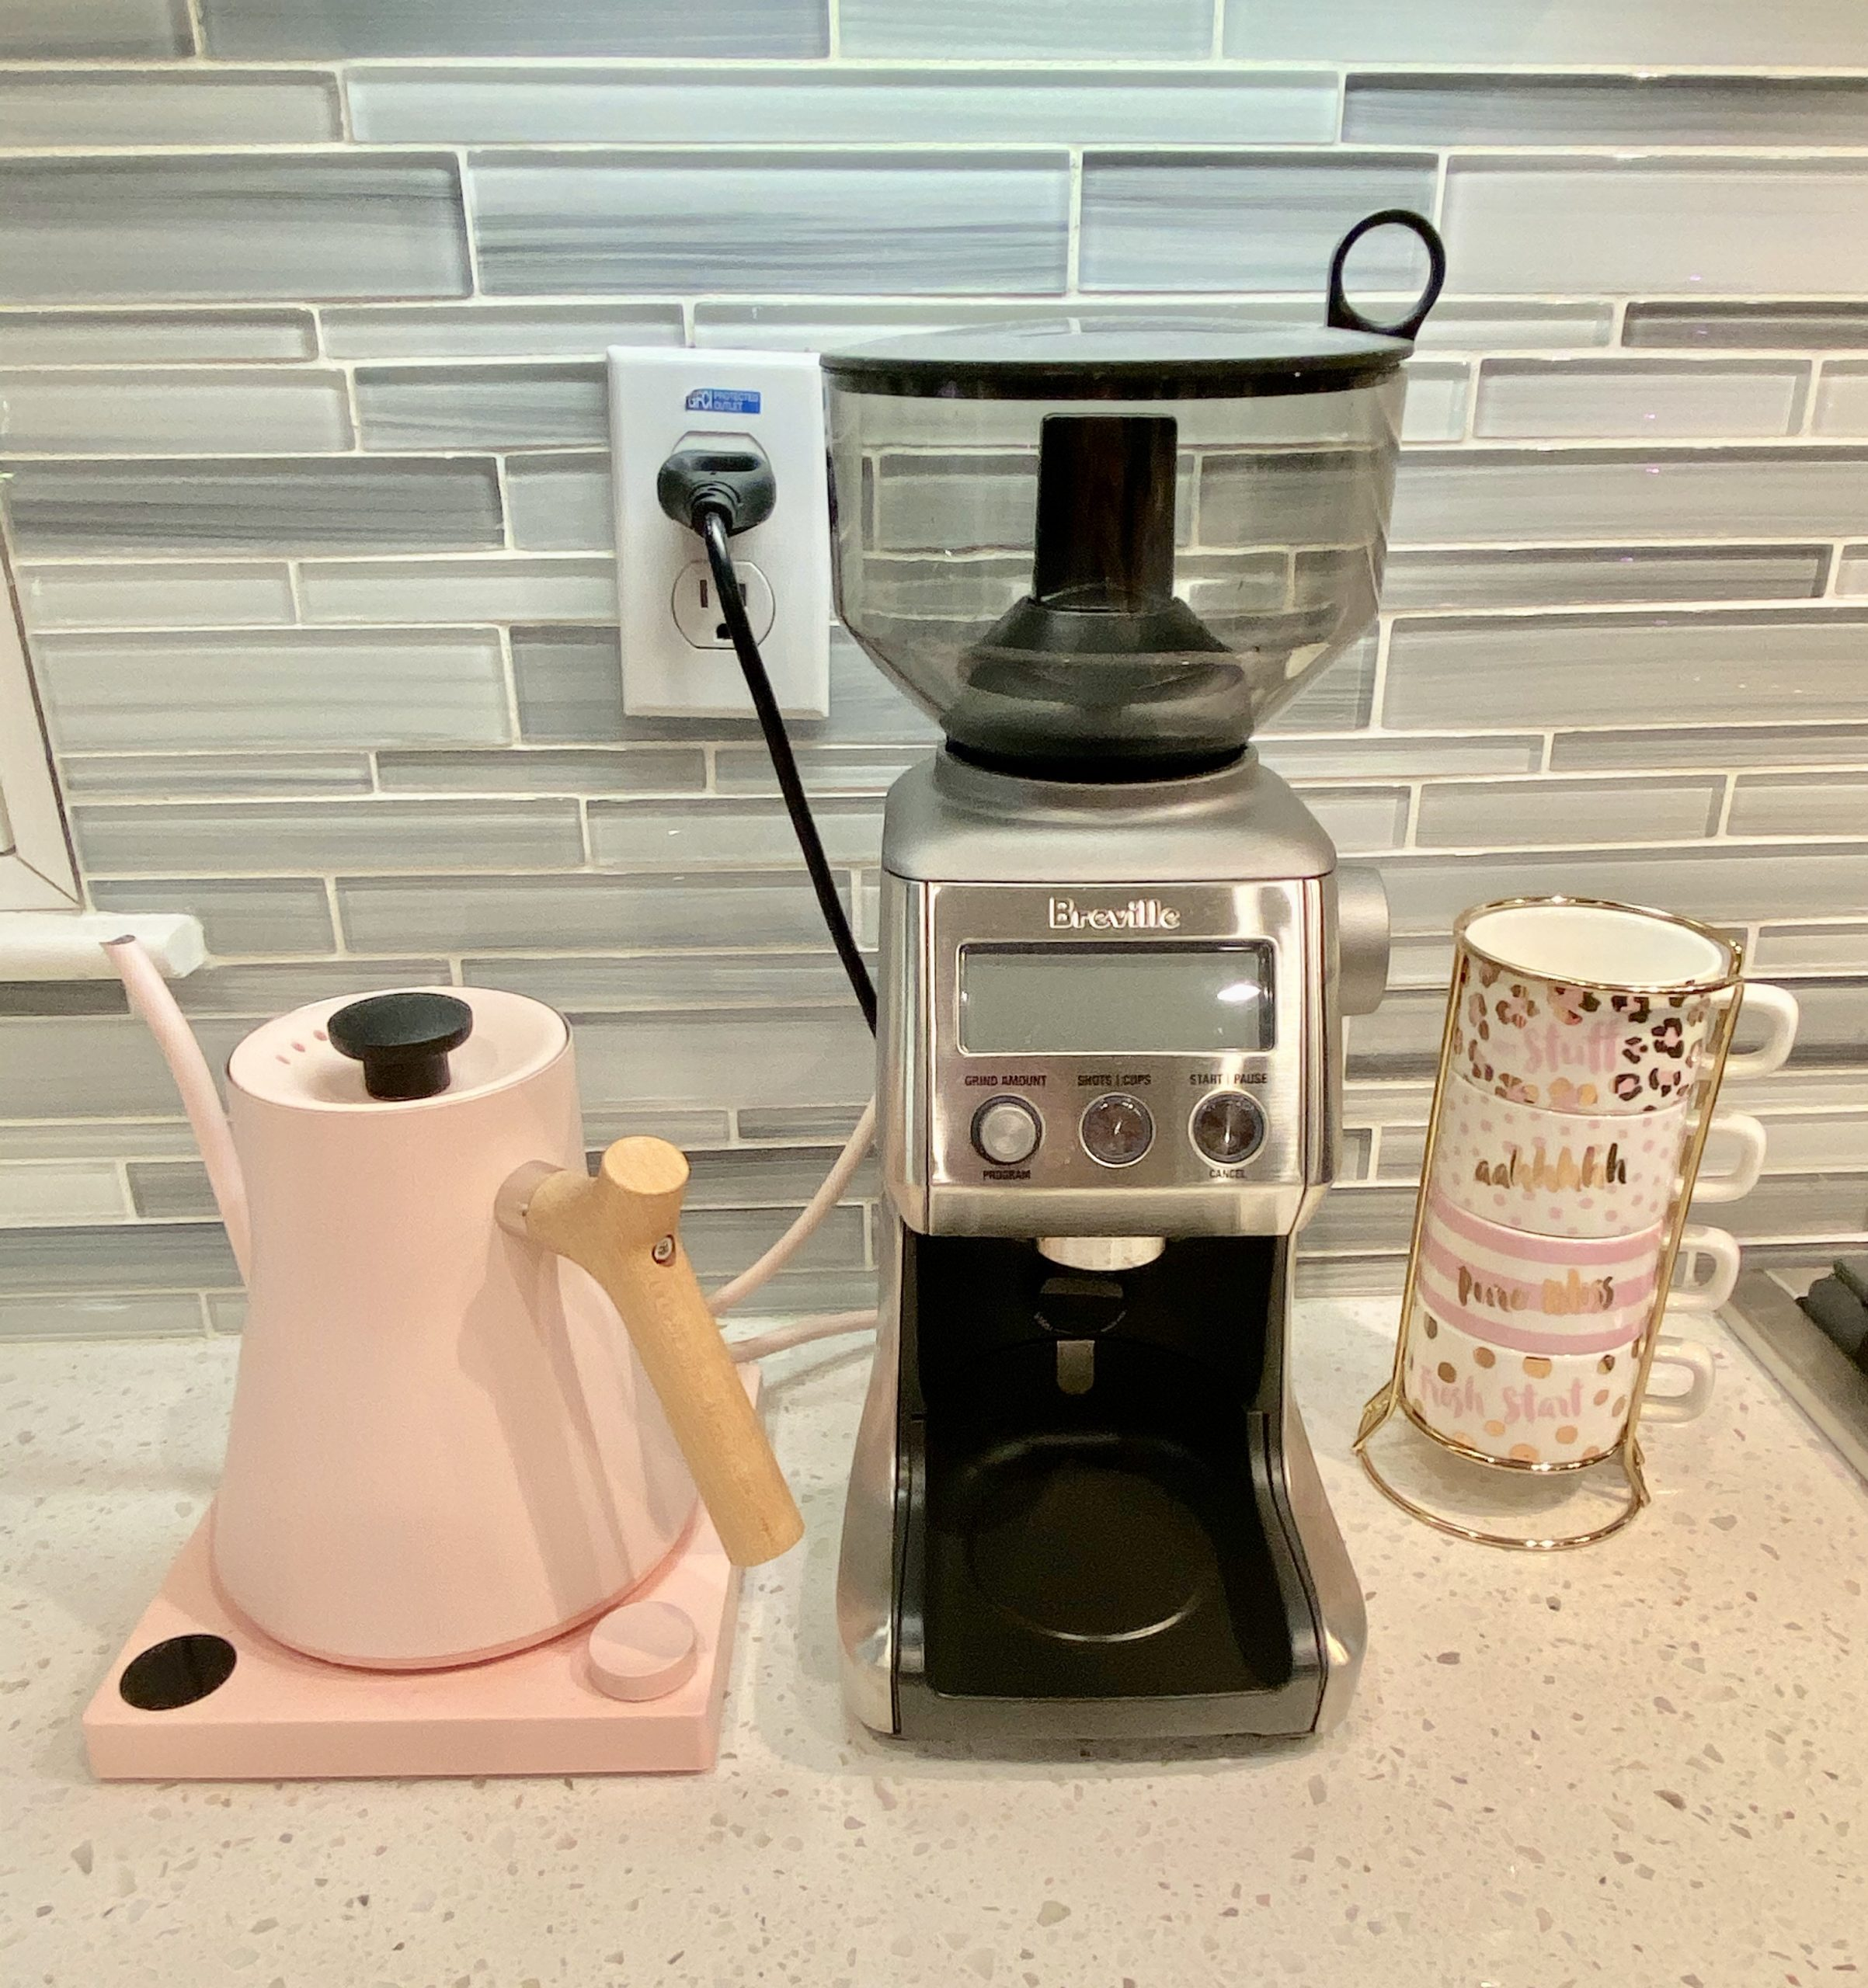 Pink Stagg kettle and Breville Coffee Grinder